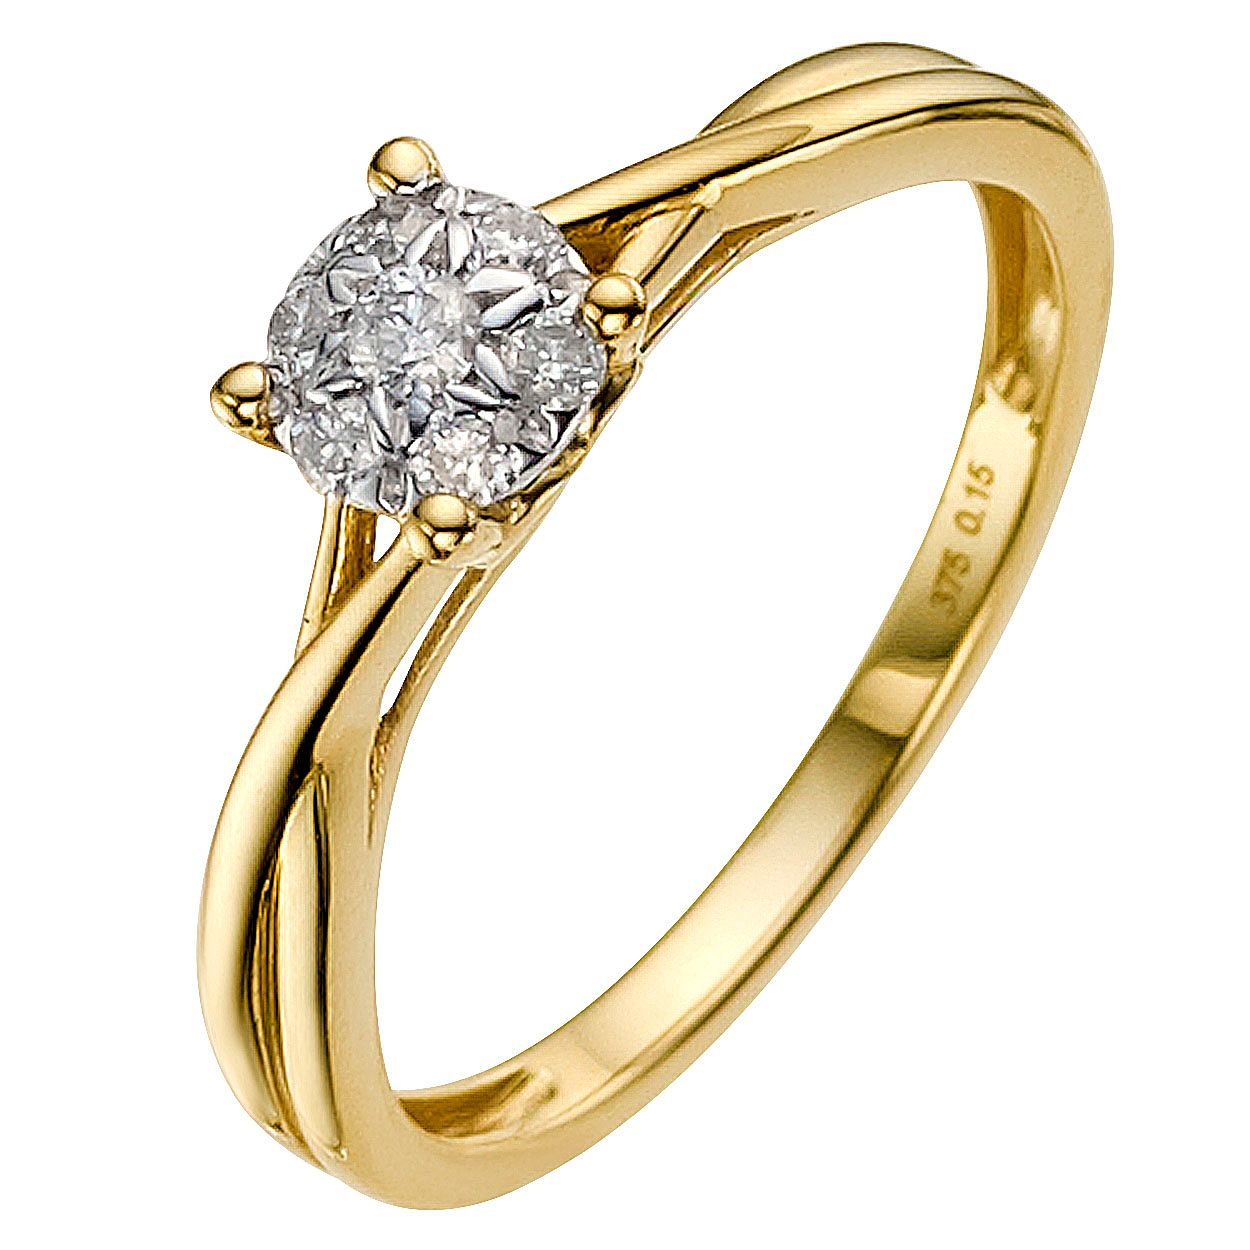 quality category affordable buy melbourne where rings bands wedding low collections cost garen to